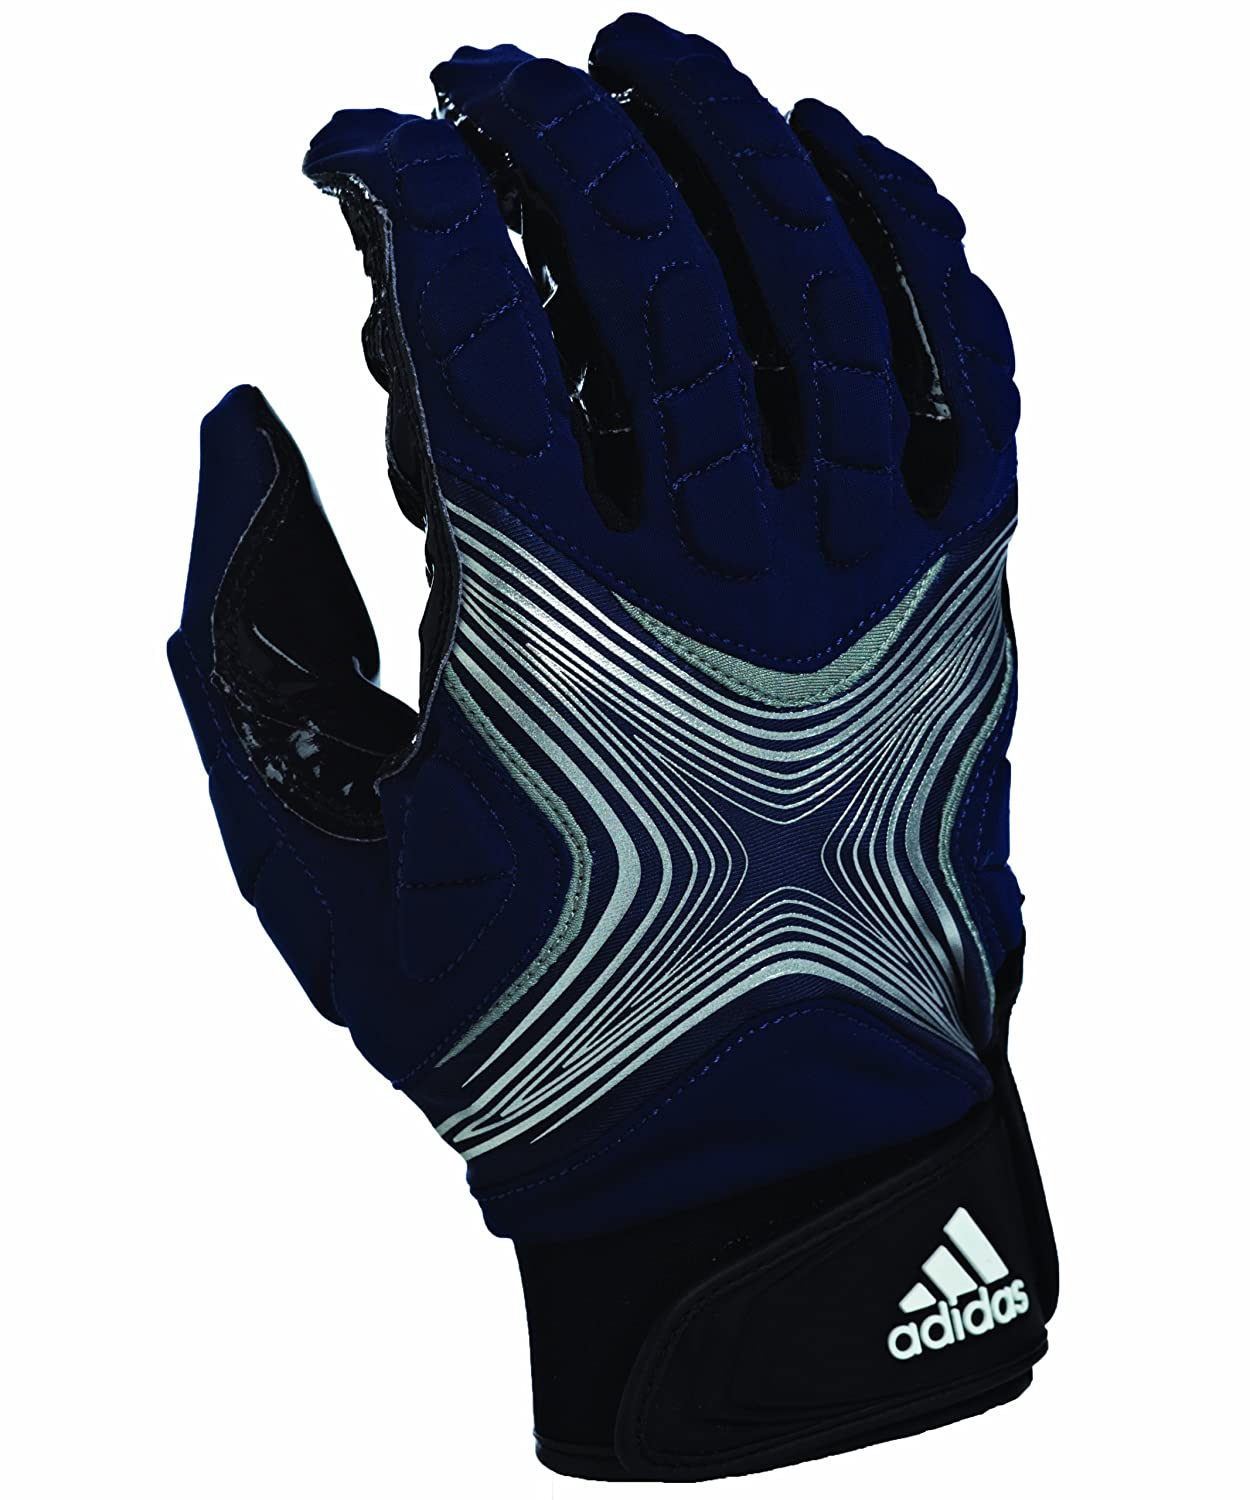 (X-Large, Navy Silver) - adidas Powerweb 2.0 Football Receiver Gloves